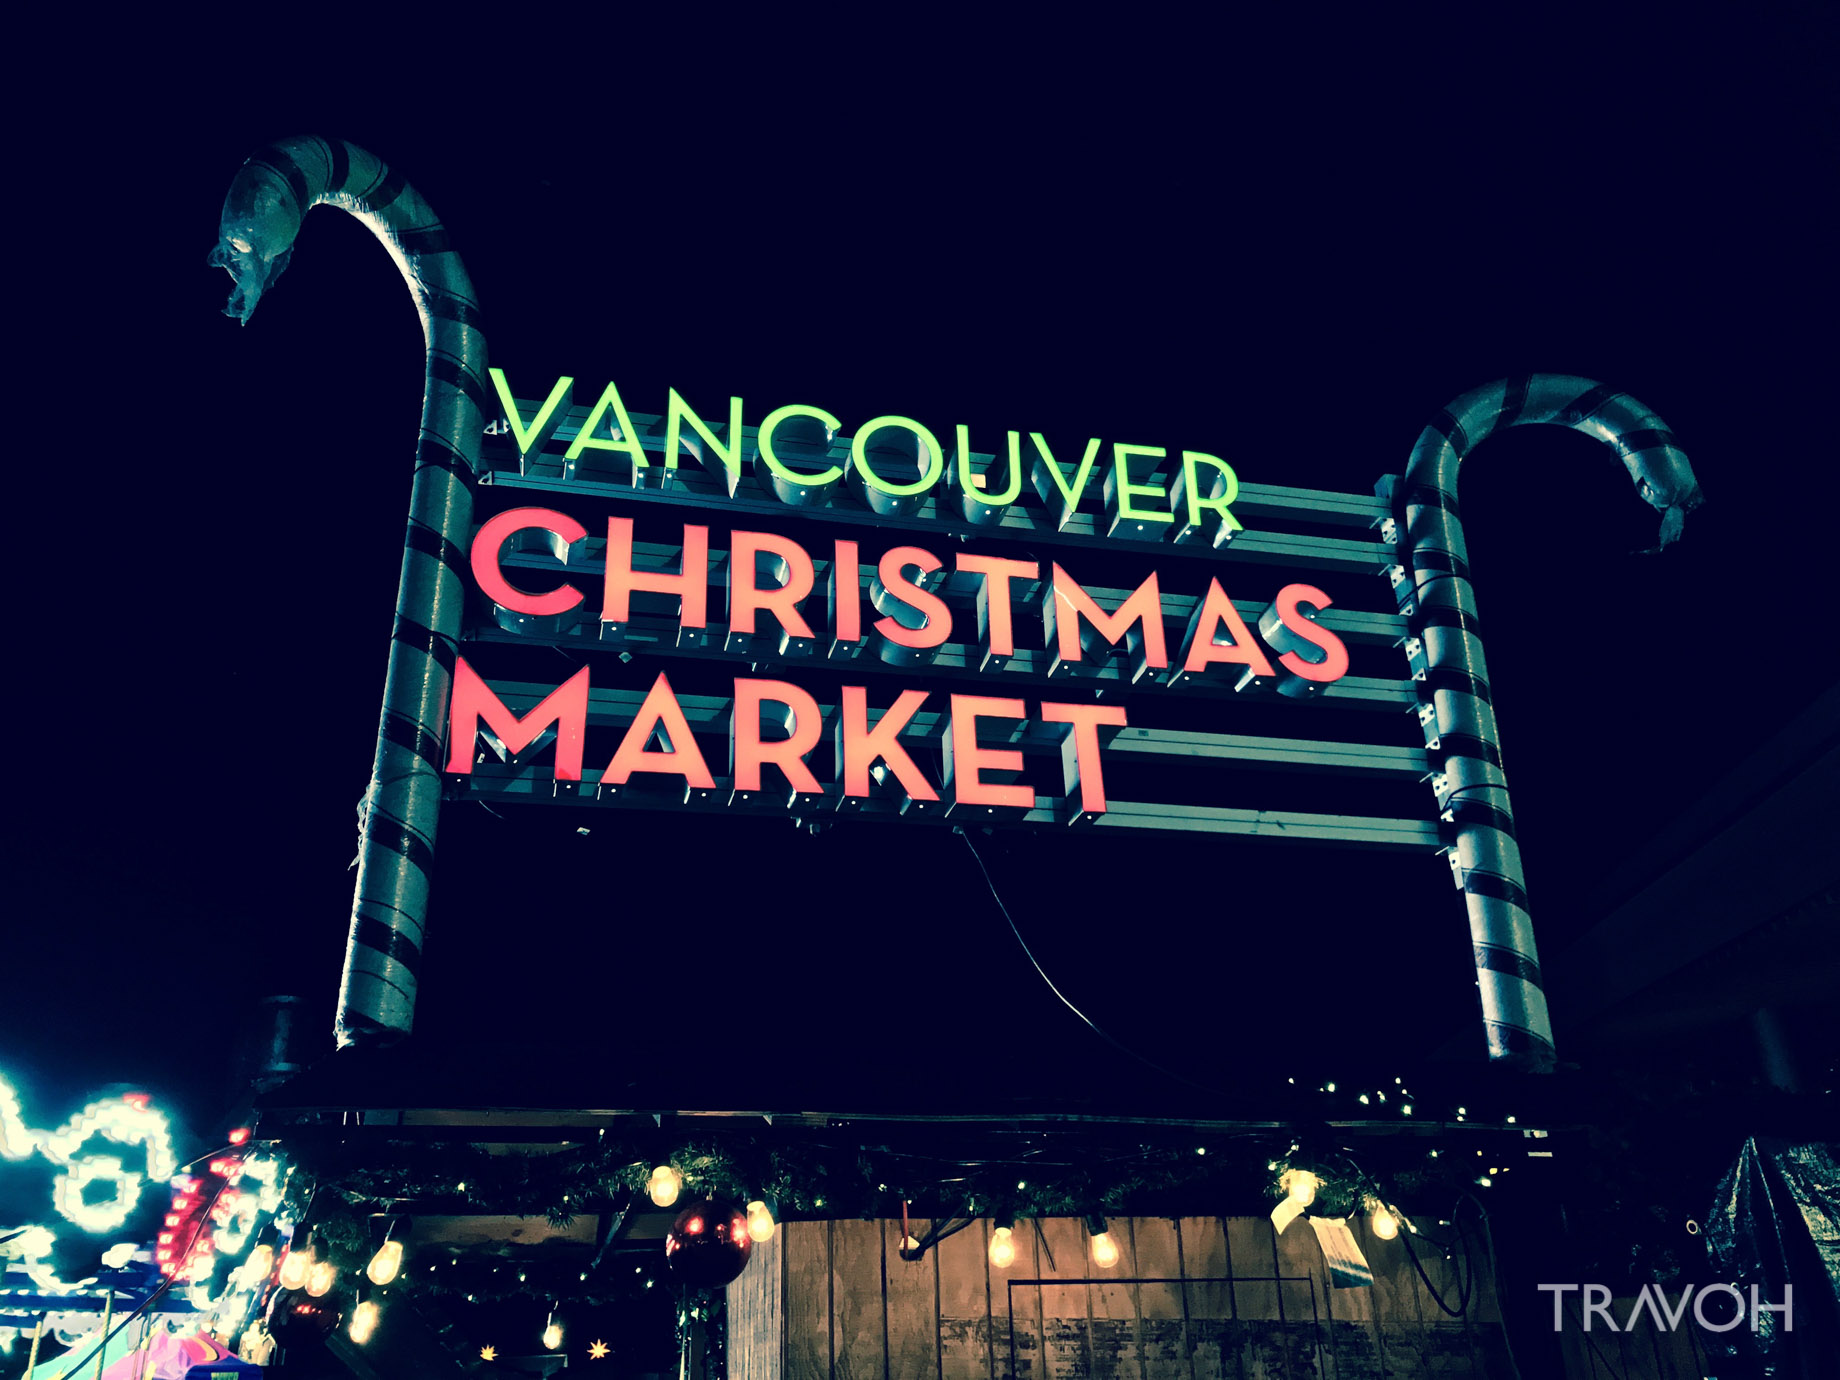 7th Annual Vancouver Christmas Market – A Very Merry German-Inspired Holiday Cheer